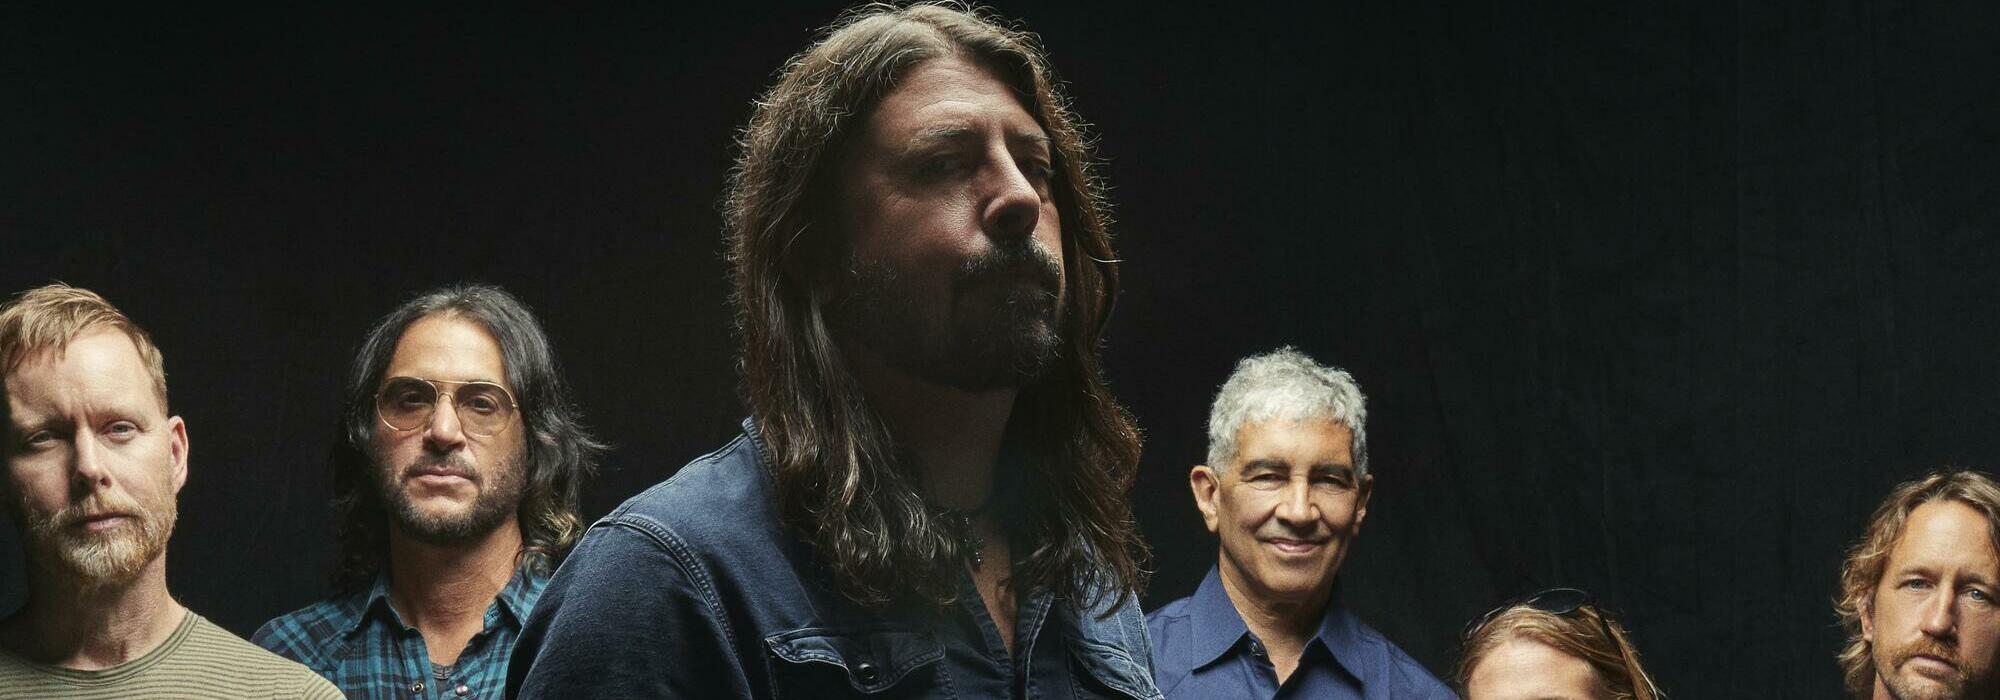 A Foo Fighters live event